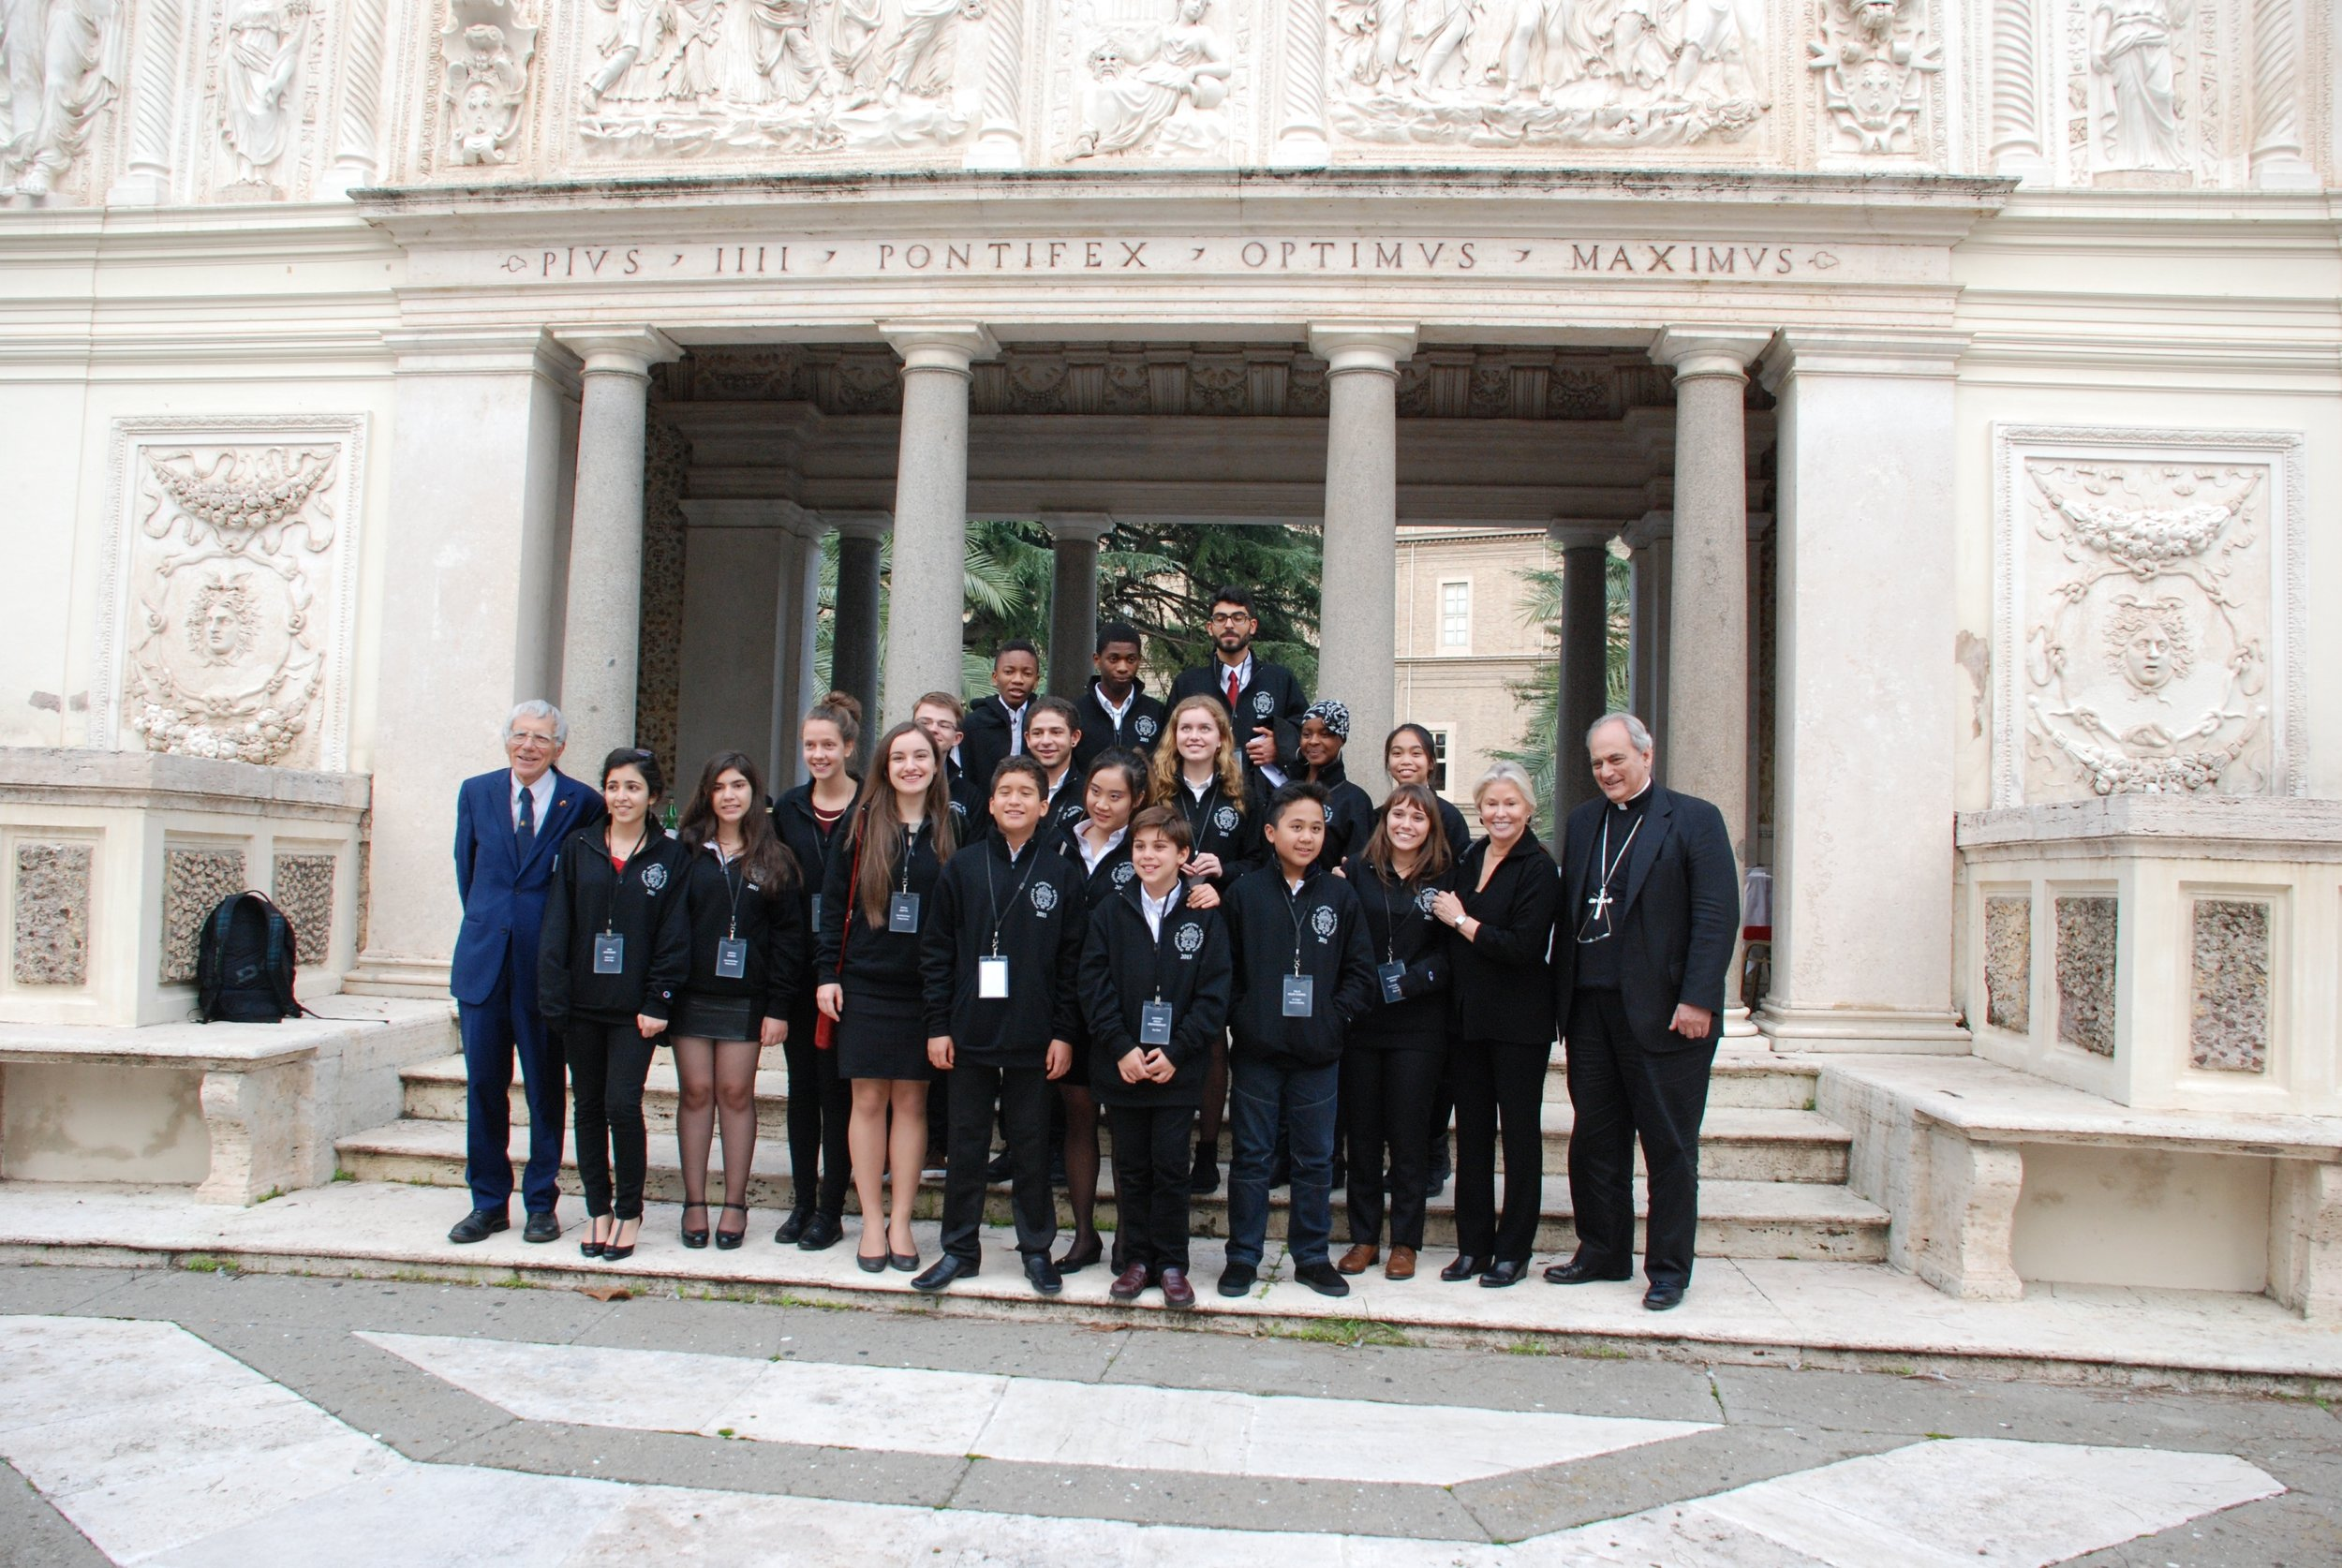 Students at Vatican